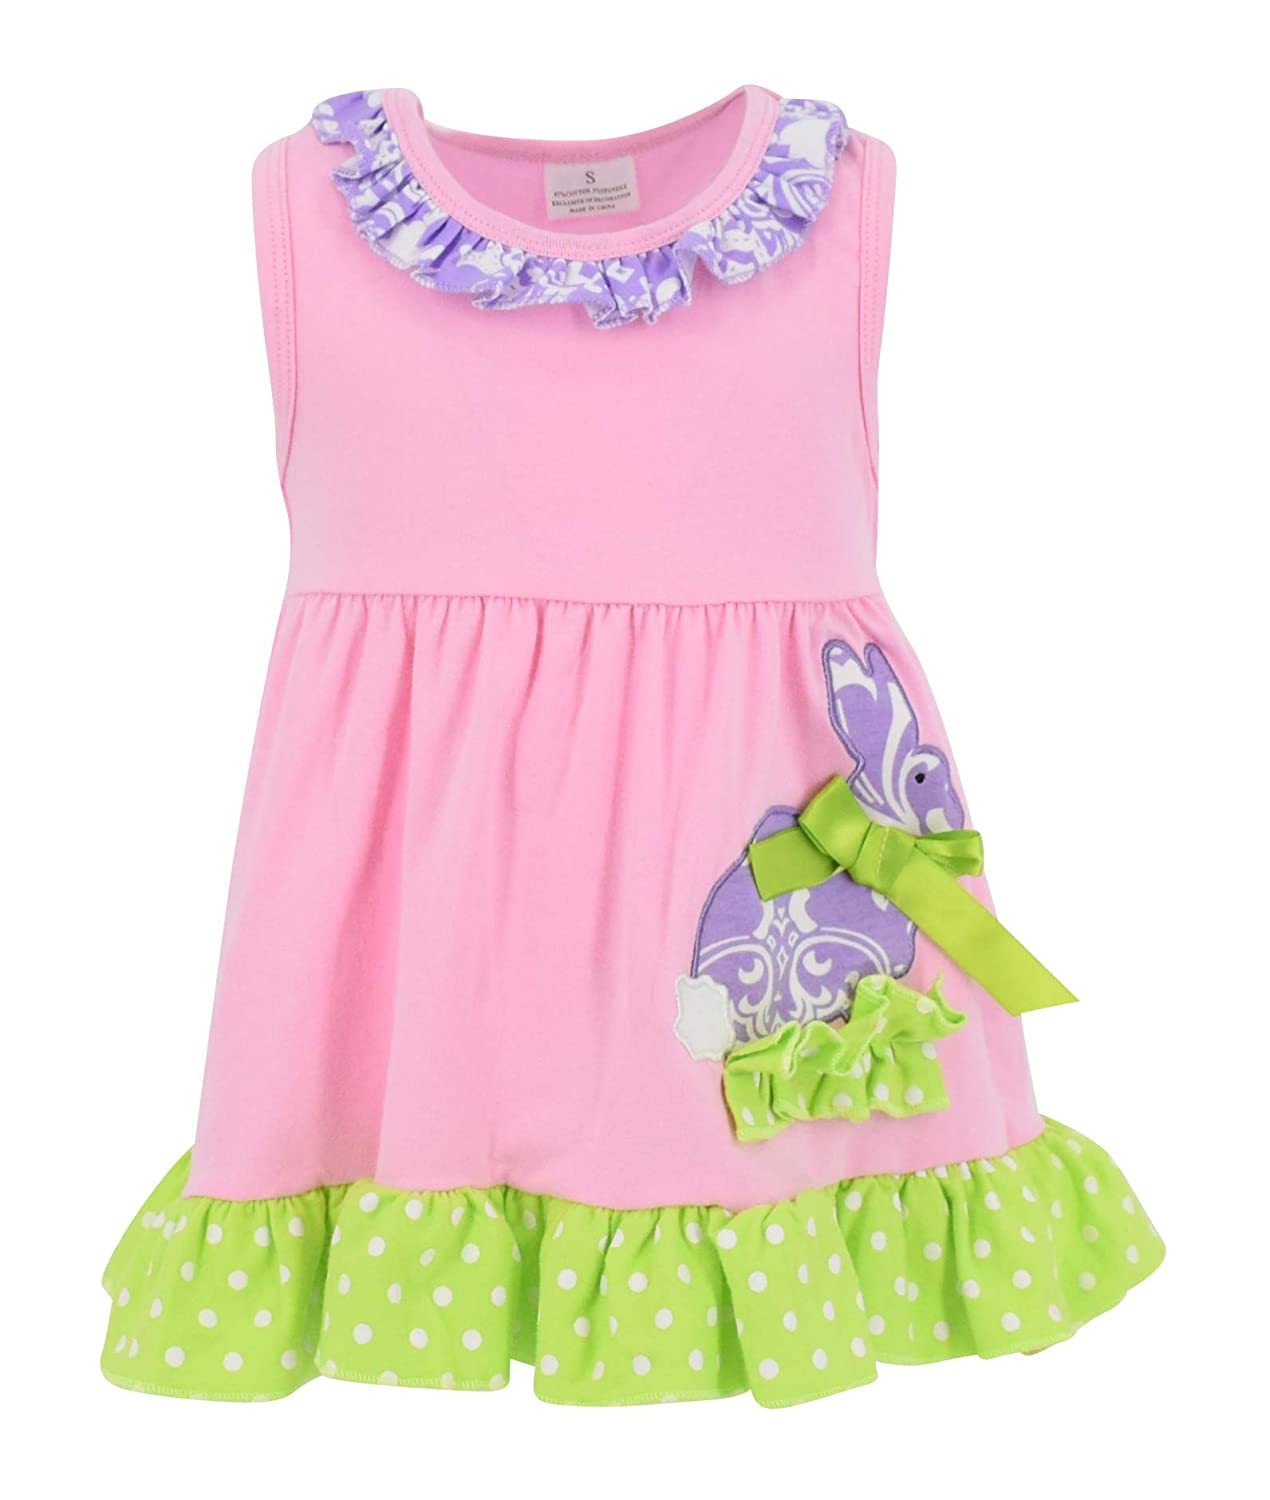 4d60232188fb Amazon.com  Unique Baby Girls Damask Easter Bunny Easter Outfit ...